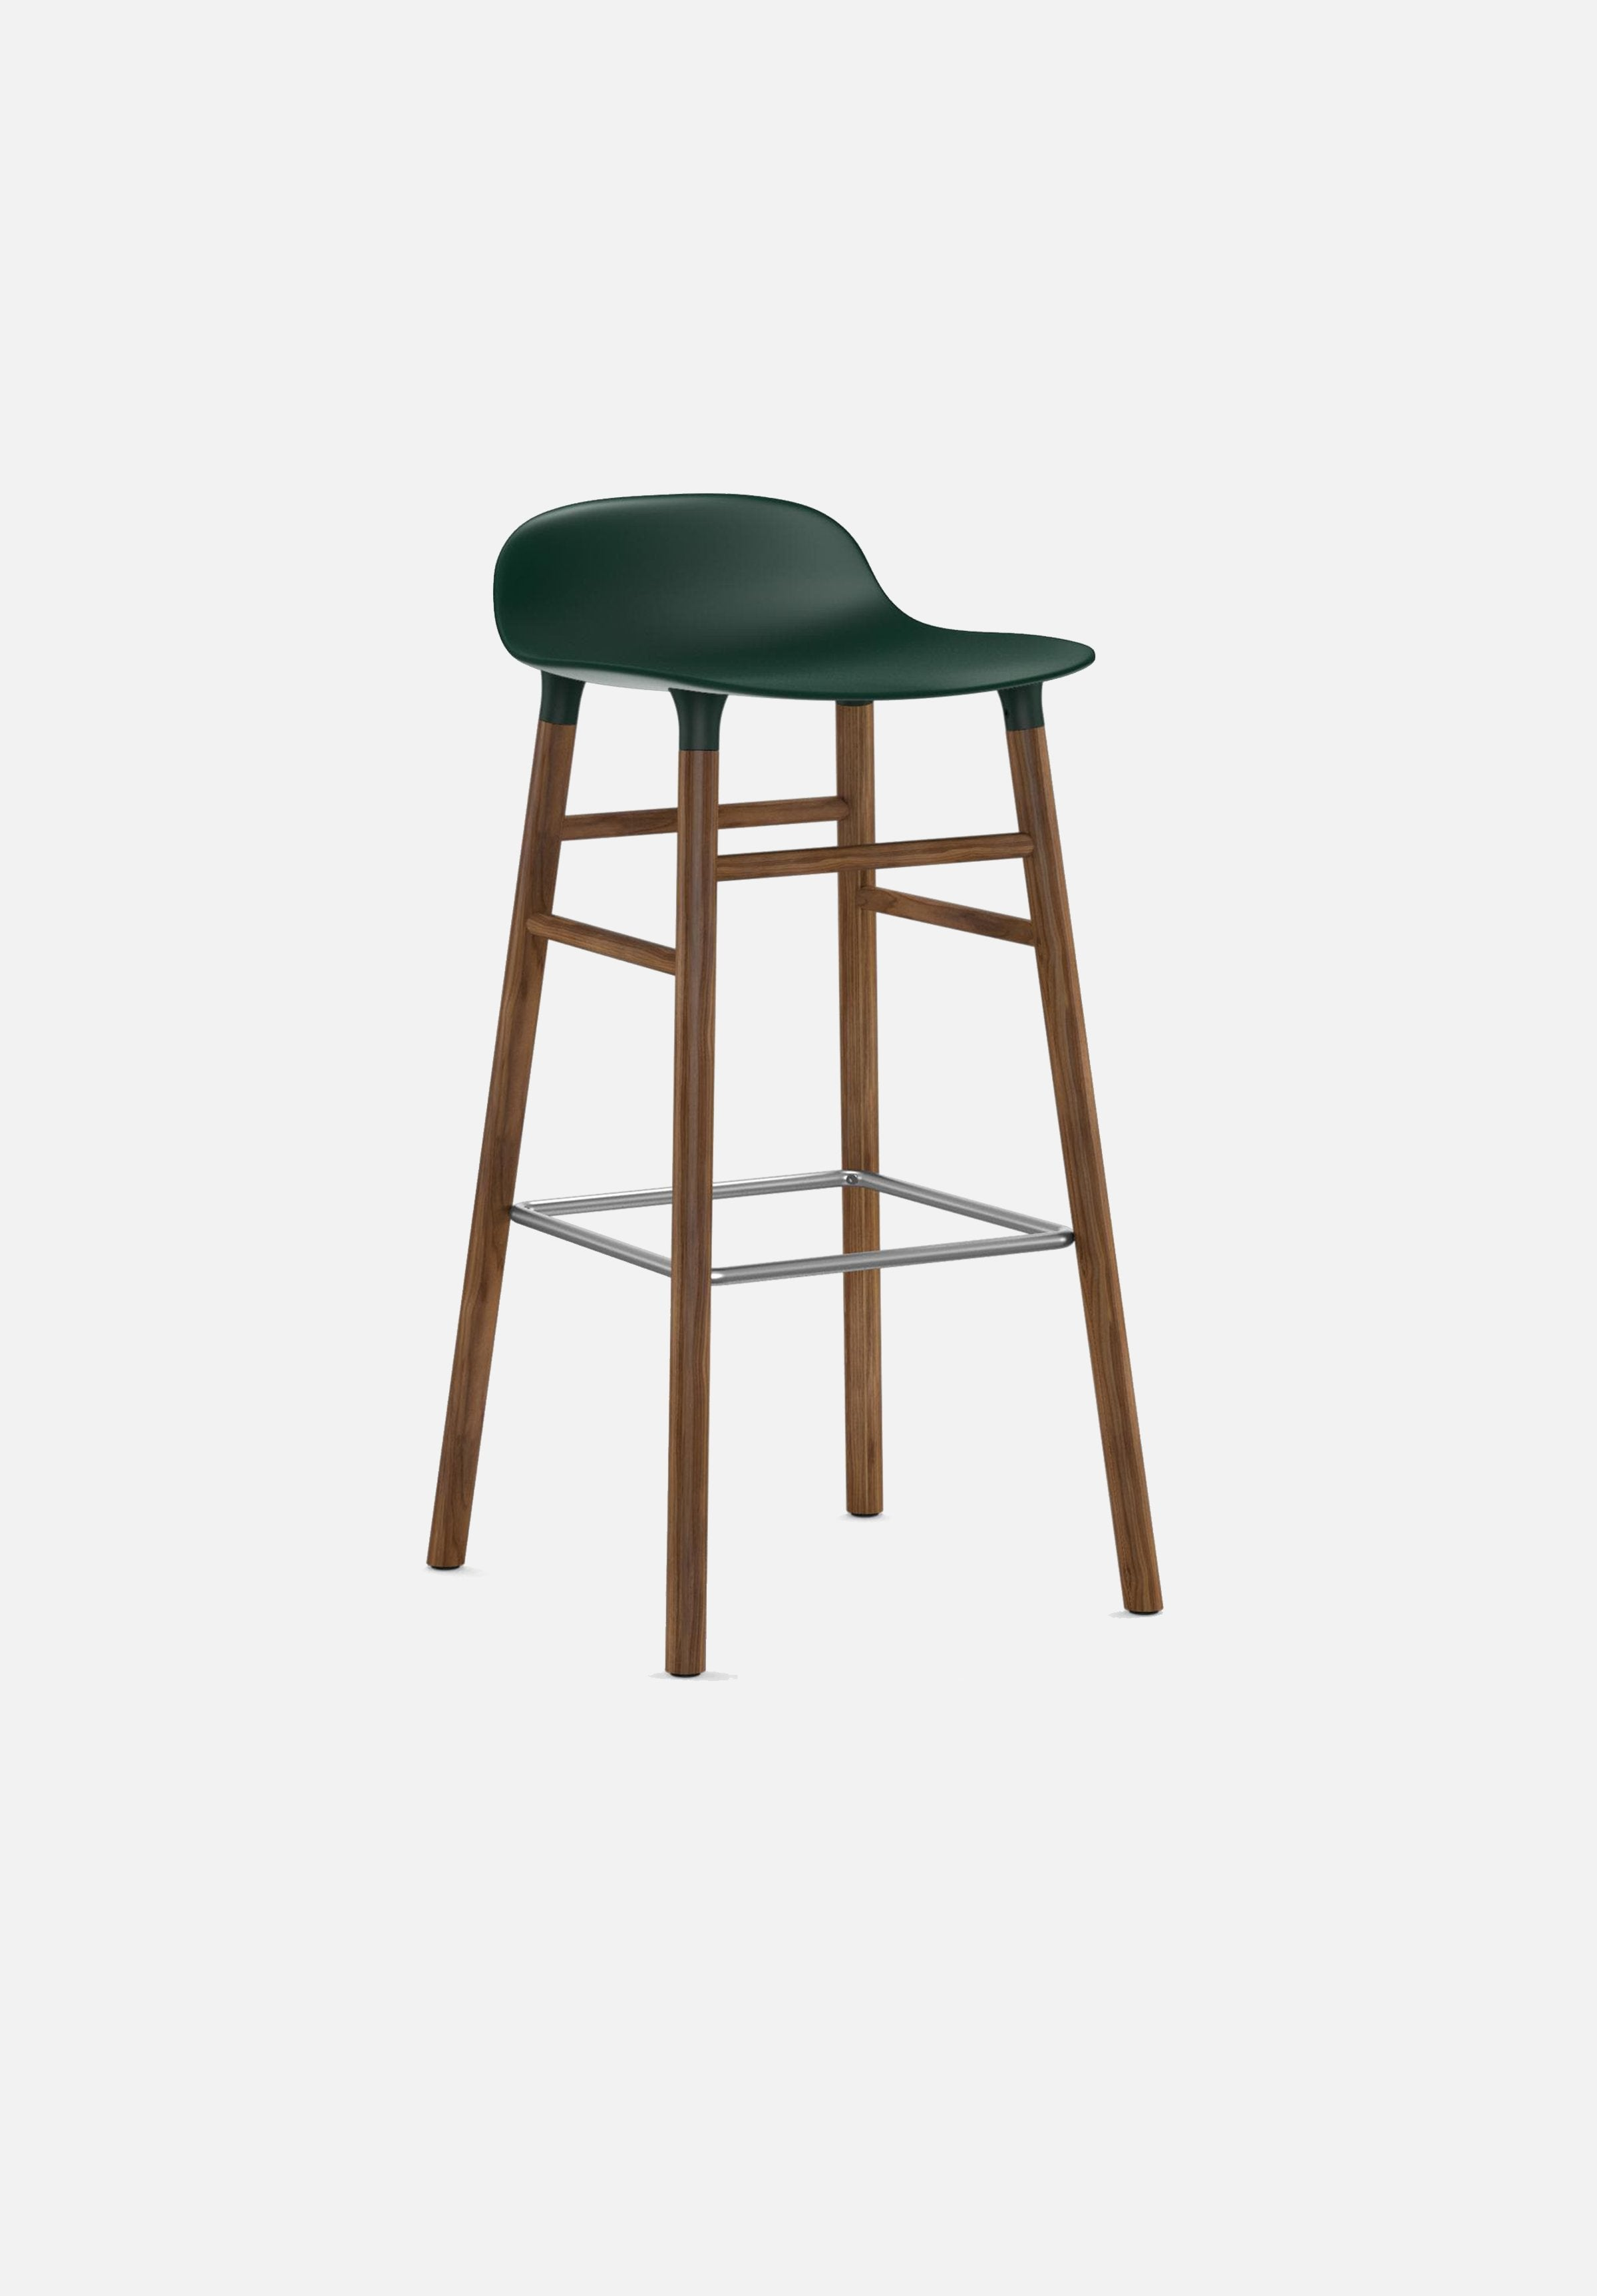 Form Stool — 75cm-Simon Legald-Normann Copenhagen-Green-Solid Walnut-Average-canada-design-store-danish-denmark-furniture-interior